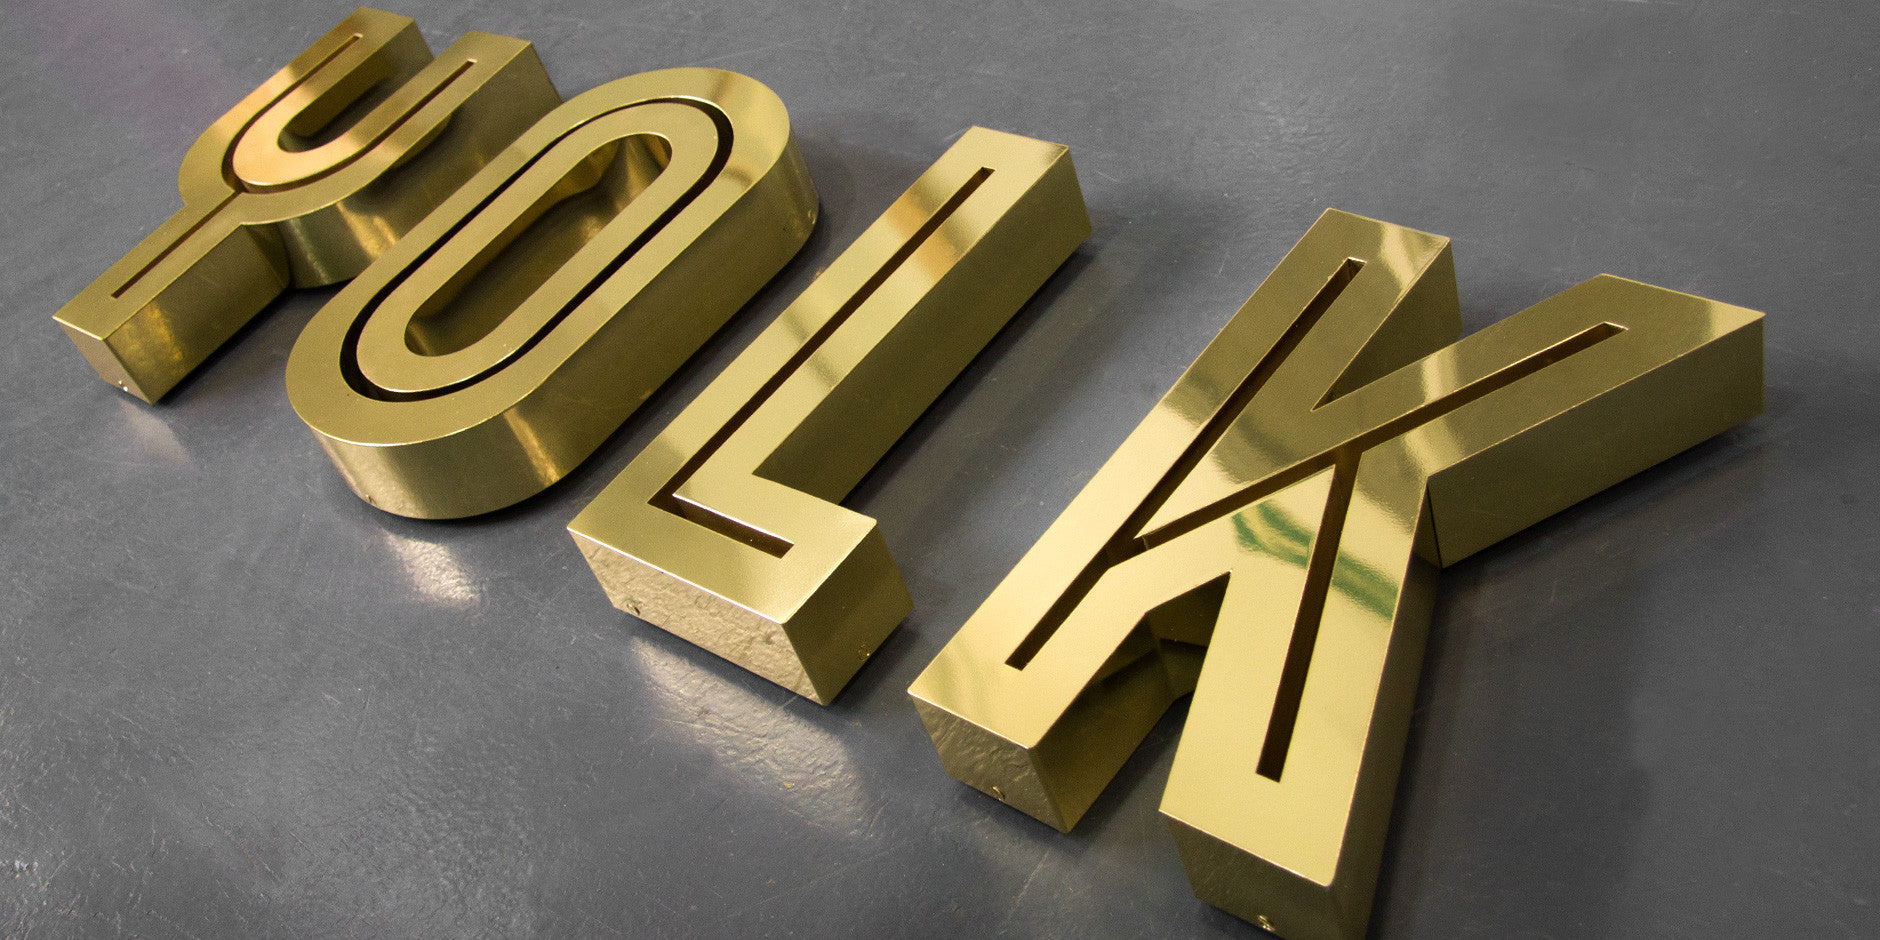 Steel Letters For Sale Metal 3D Letters  3D Sign Makers  Goodwin & Goodwin™  London